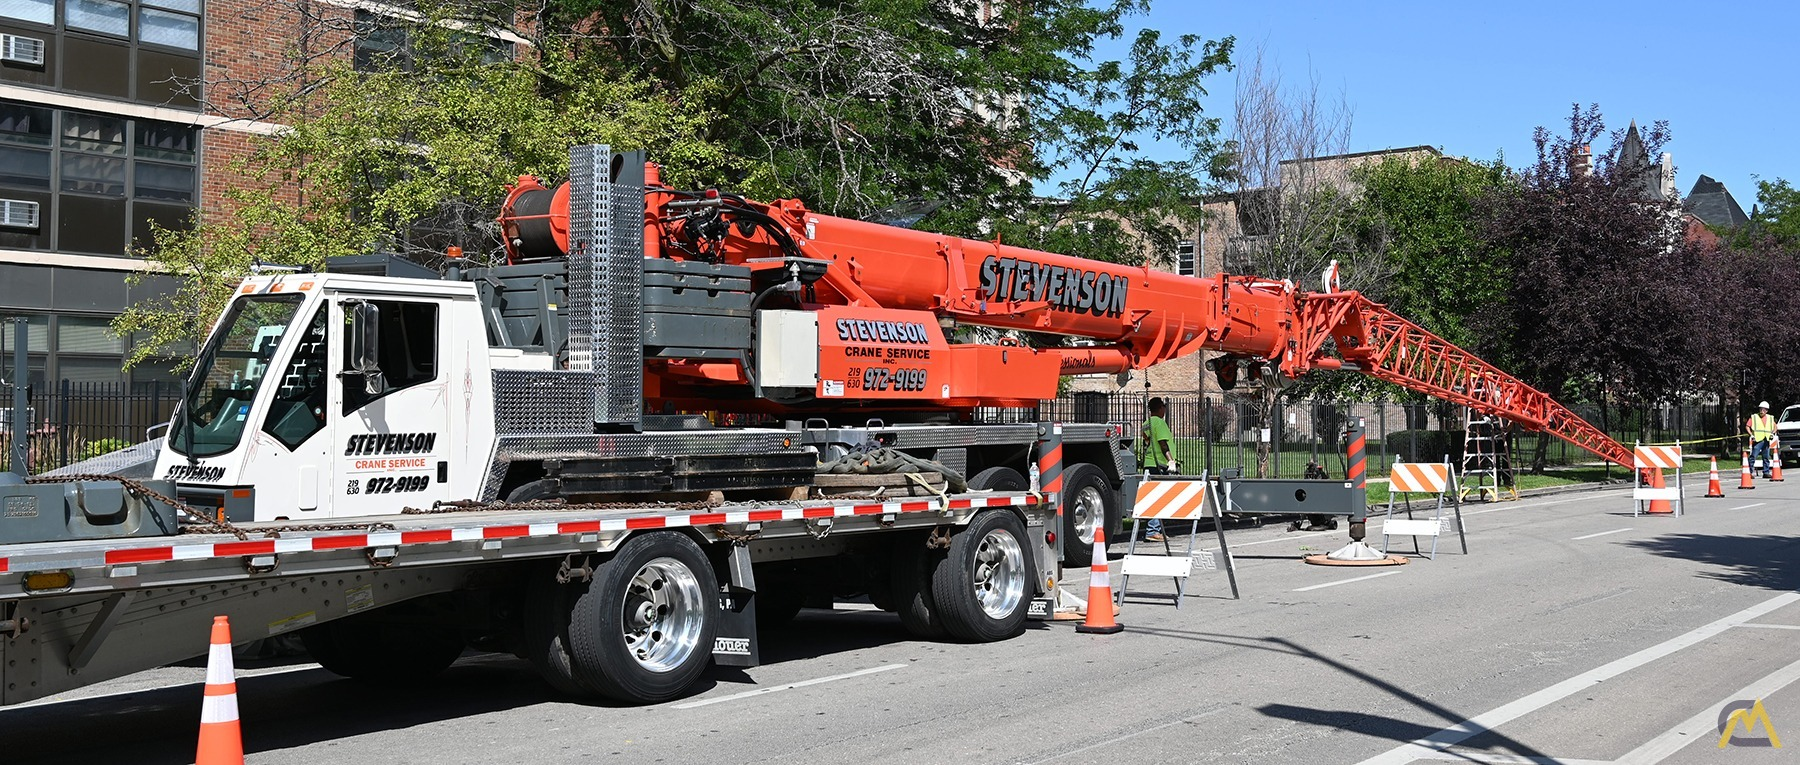 2013 Grove TMS9000E 110-Ton Hydraulic Truck Crane Motivated Seller, All Reasonable Offers Considered 6